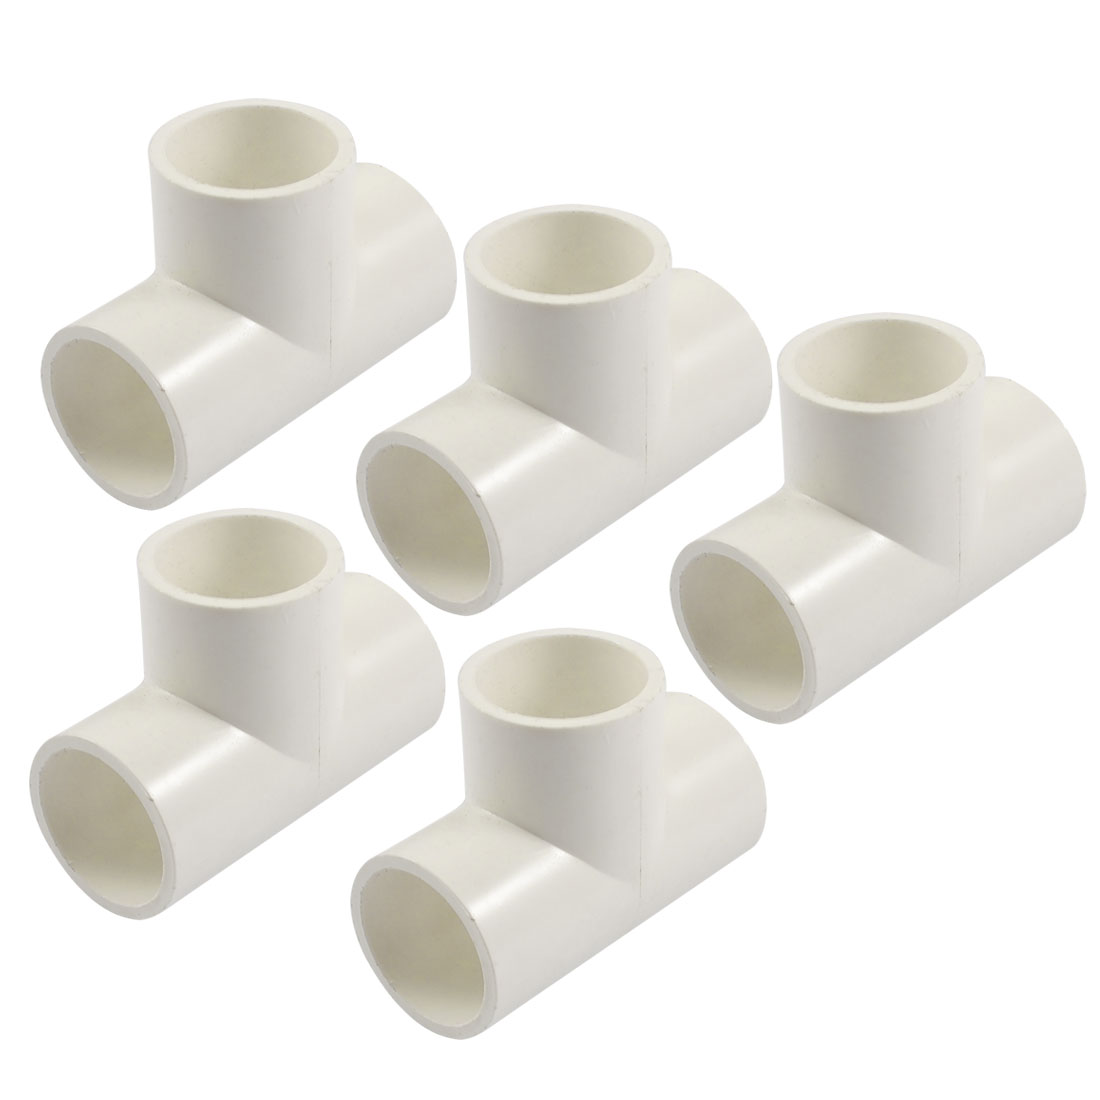 25mm PVC Tee 3 Way Water Pipe Tube Adapter Connectors White 5 Pcs